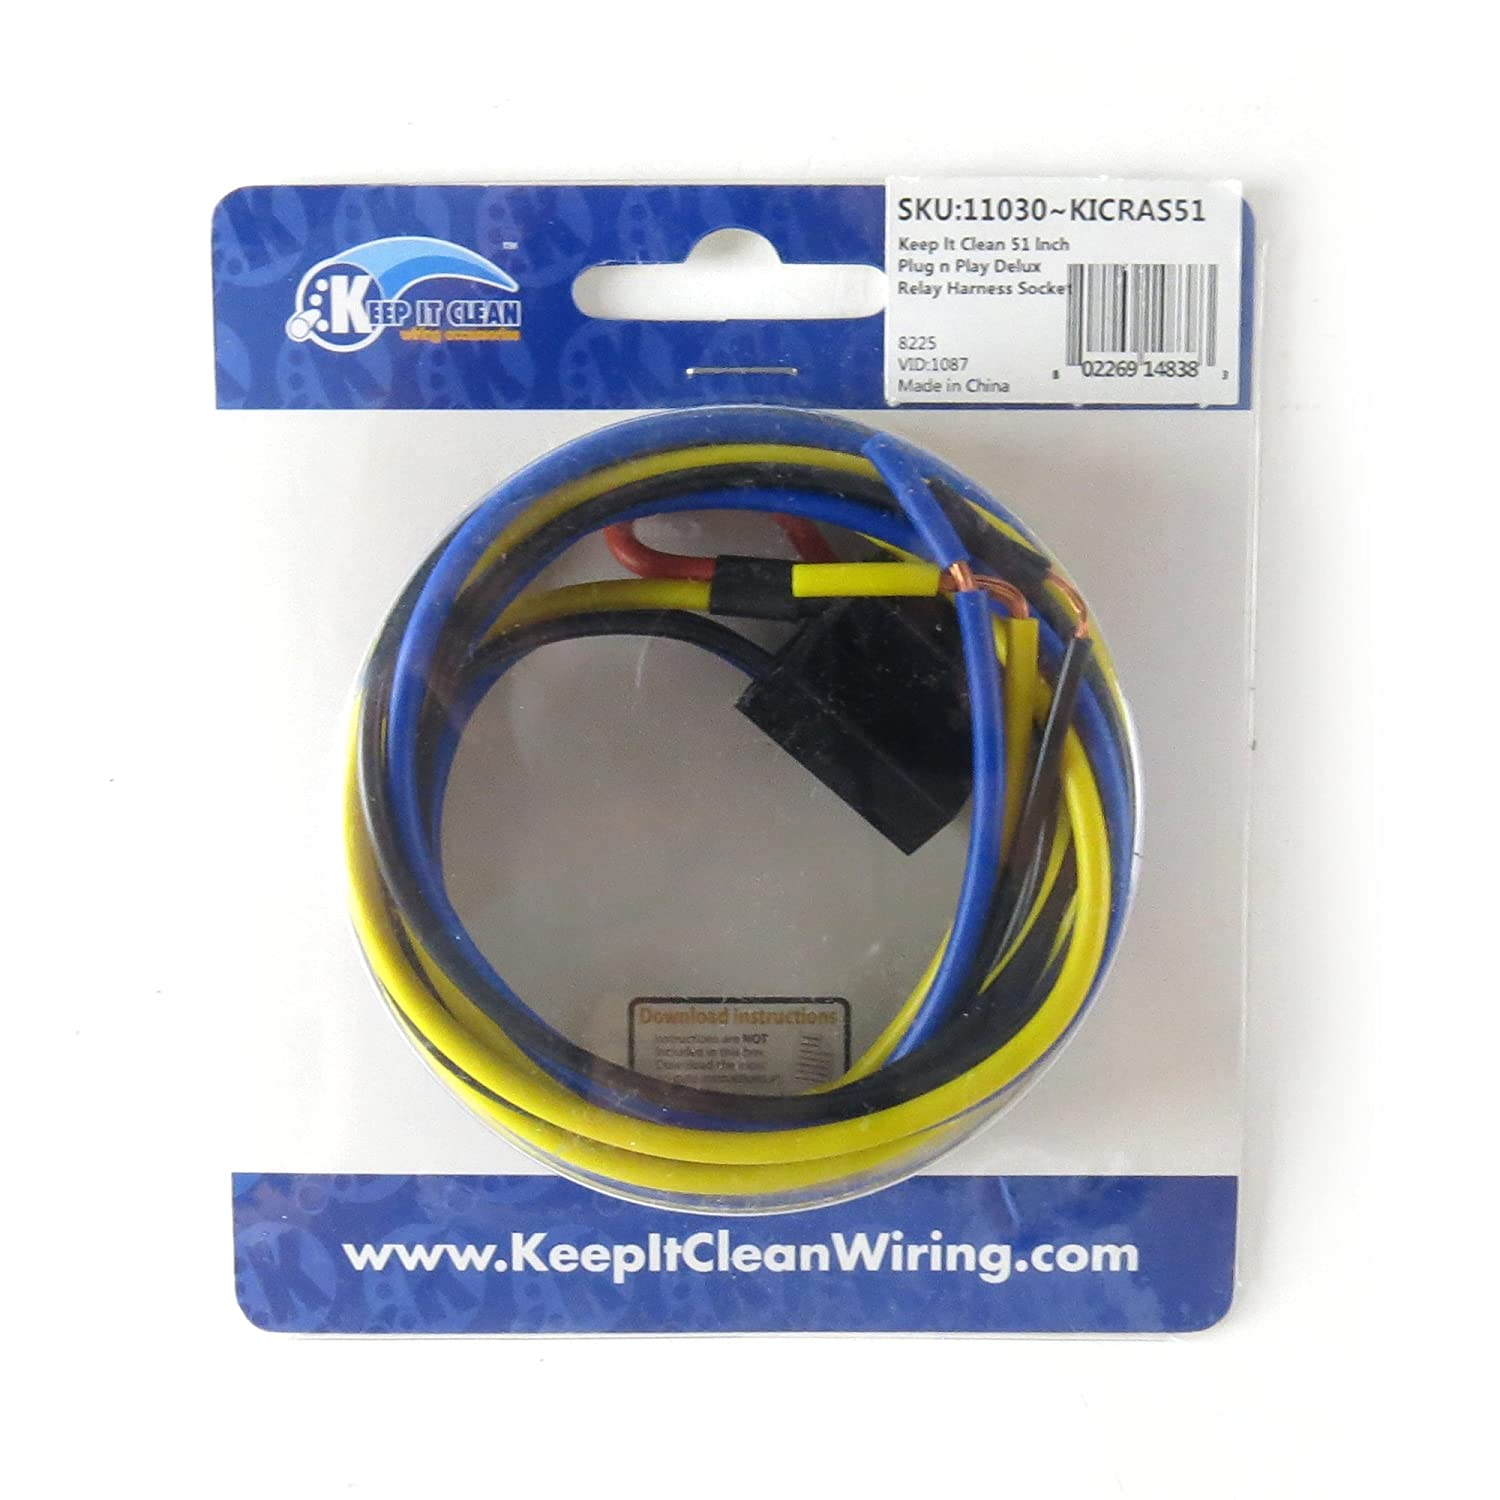 Amazon.com: Keep It Clean 11030 Relay Harness Socket 51 inch Plug n Play  Deluxe Relay Harness Socket: Automotive